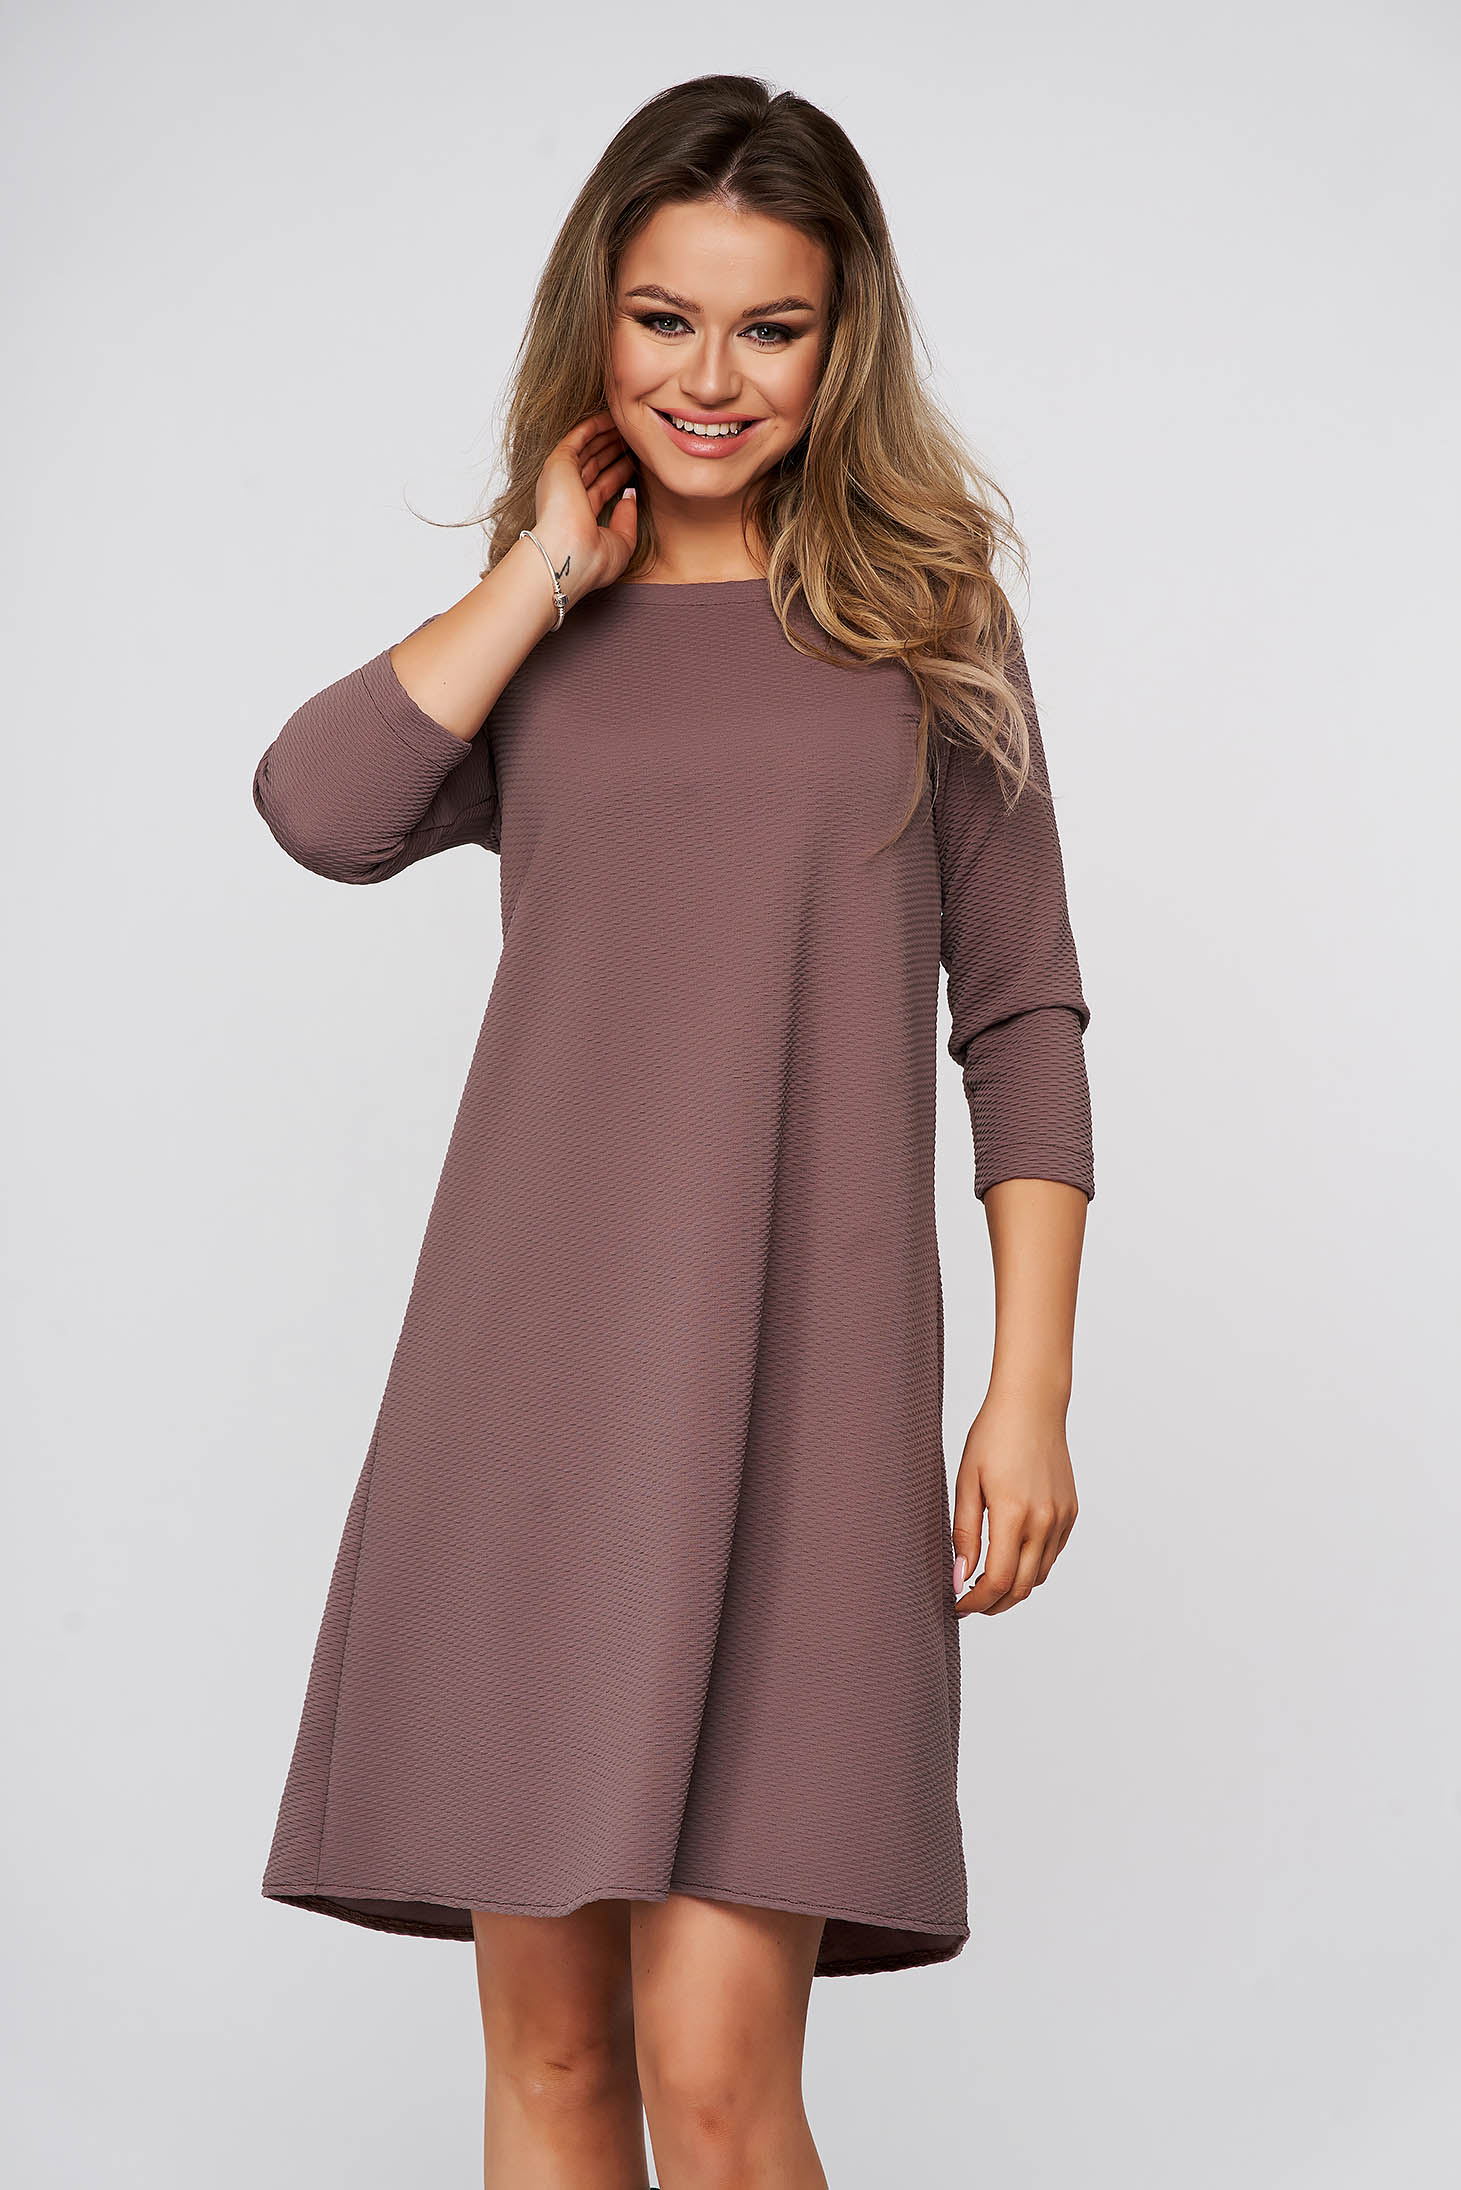 StarShinerS cappuccino dress daily short cut flared slightly elastic fabric